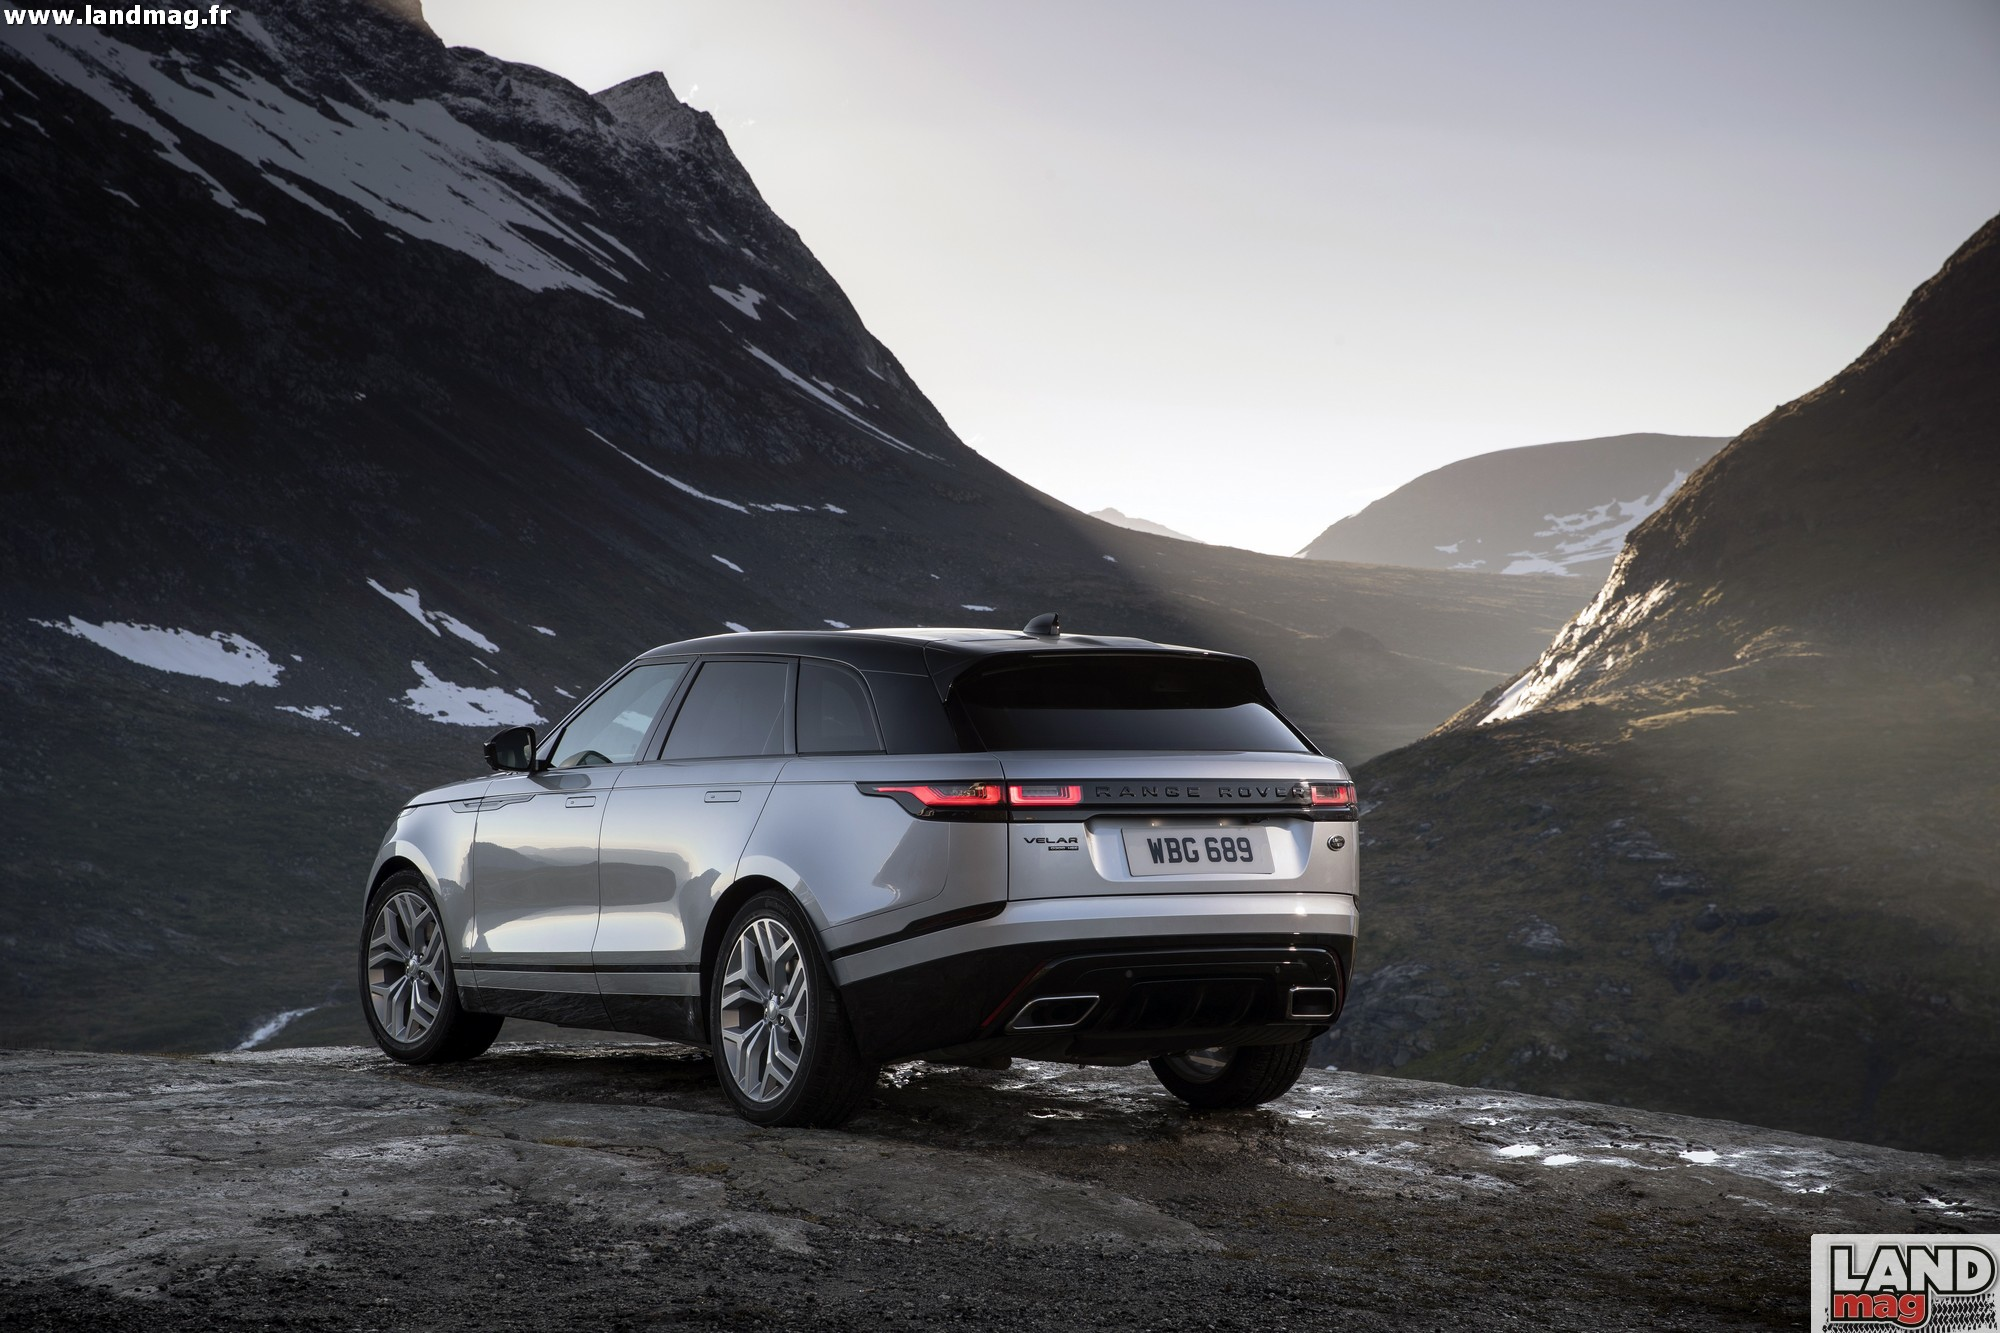 photos premiers essais du range rover velar. Black Bedroom Furniture Sets. Home Design Ideas